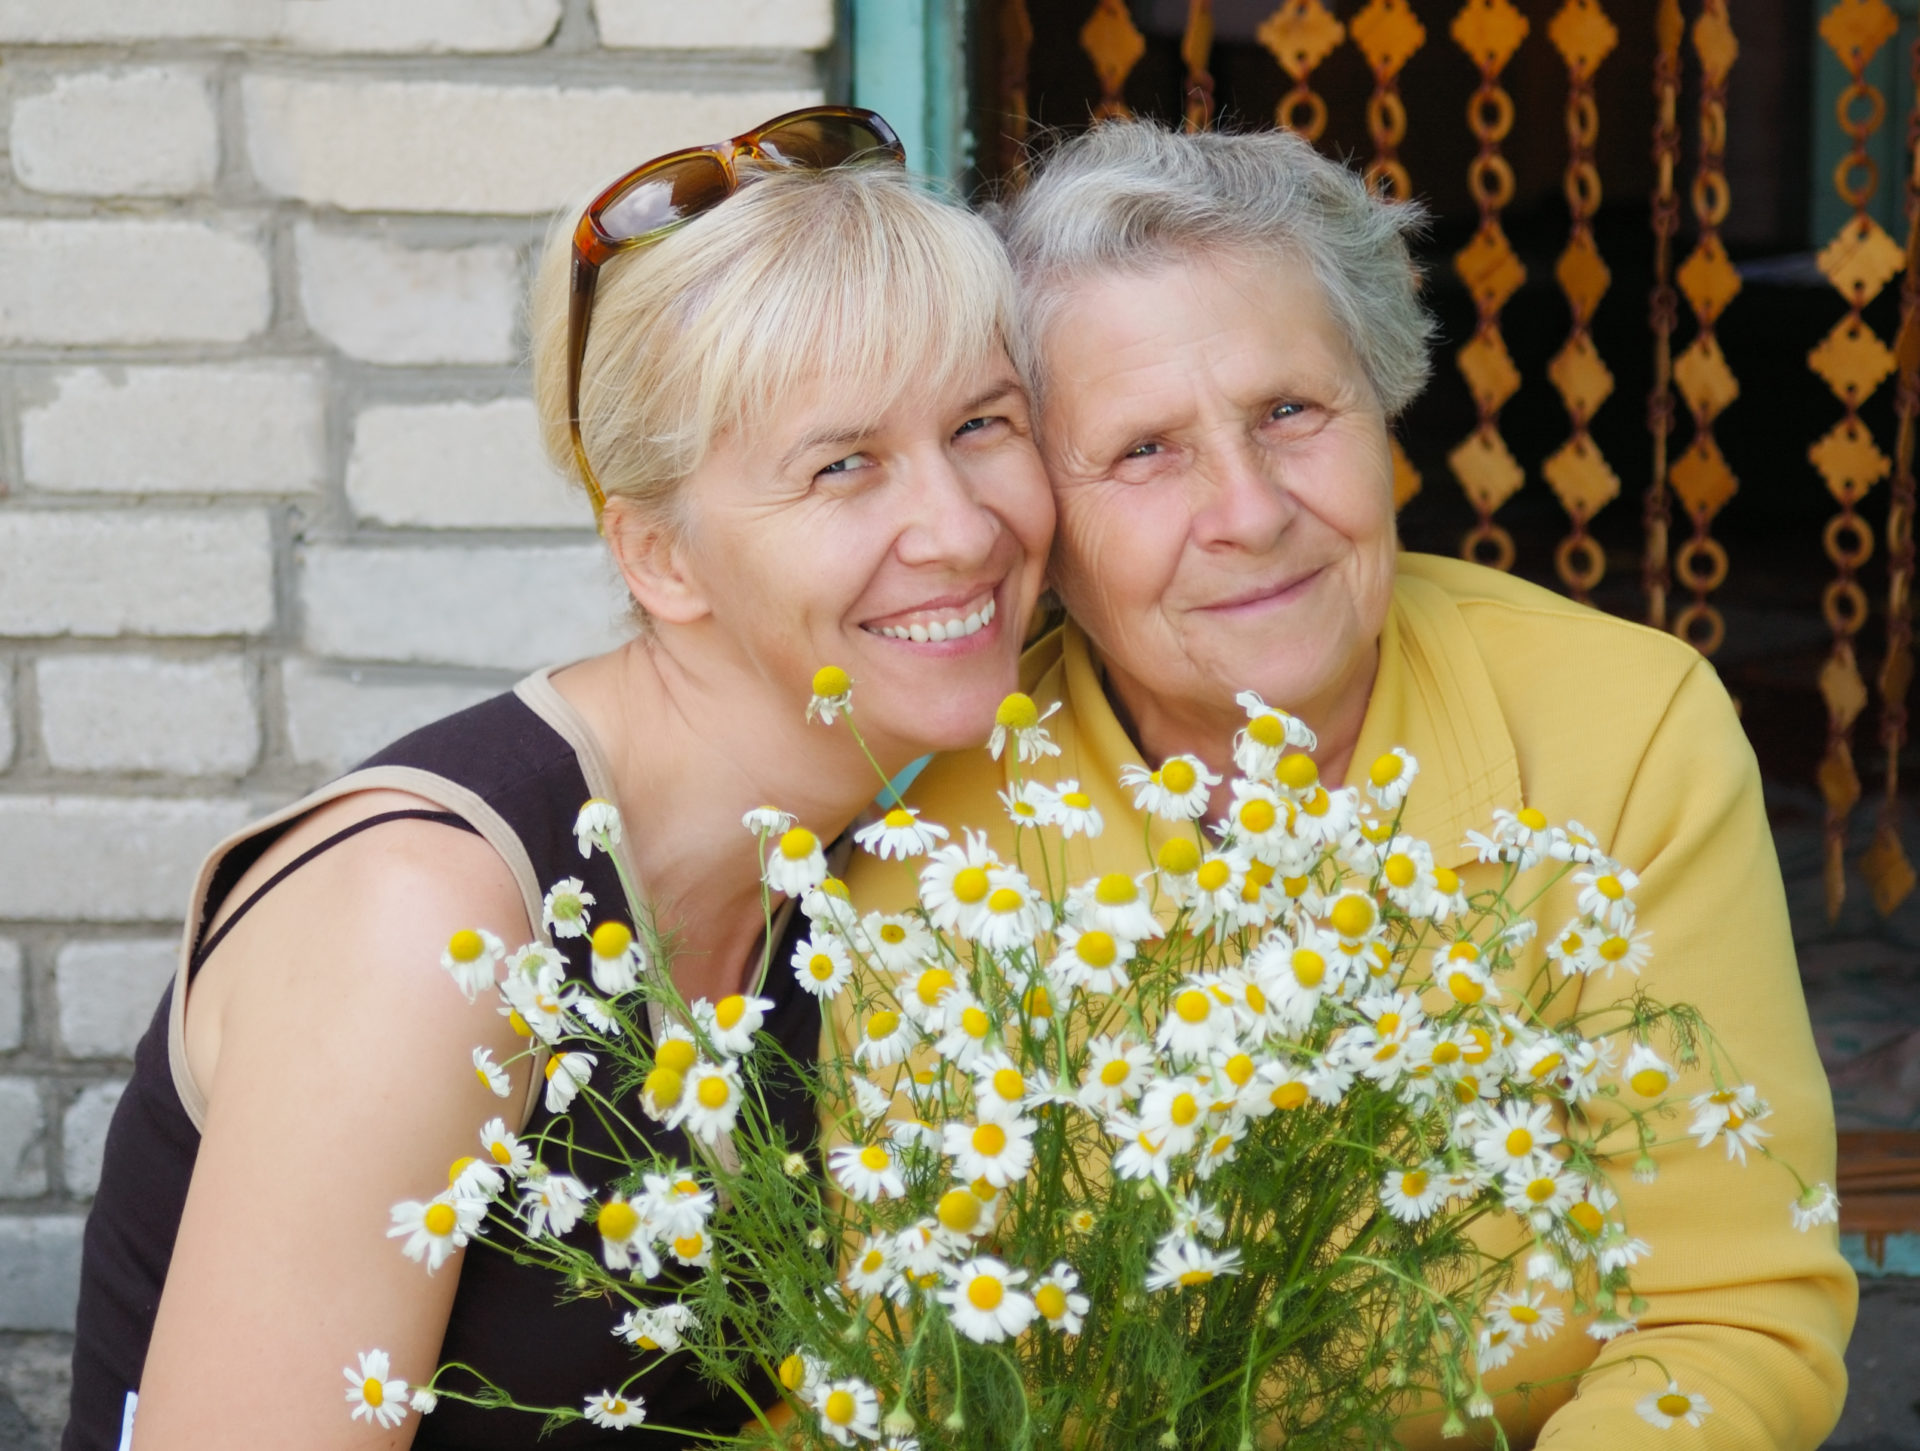 mother with daughter take bouquet of camomile